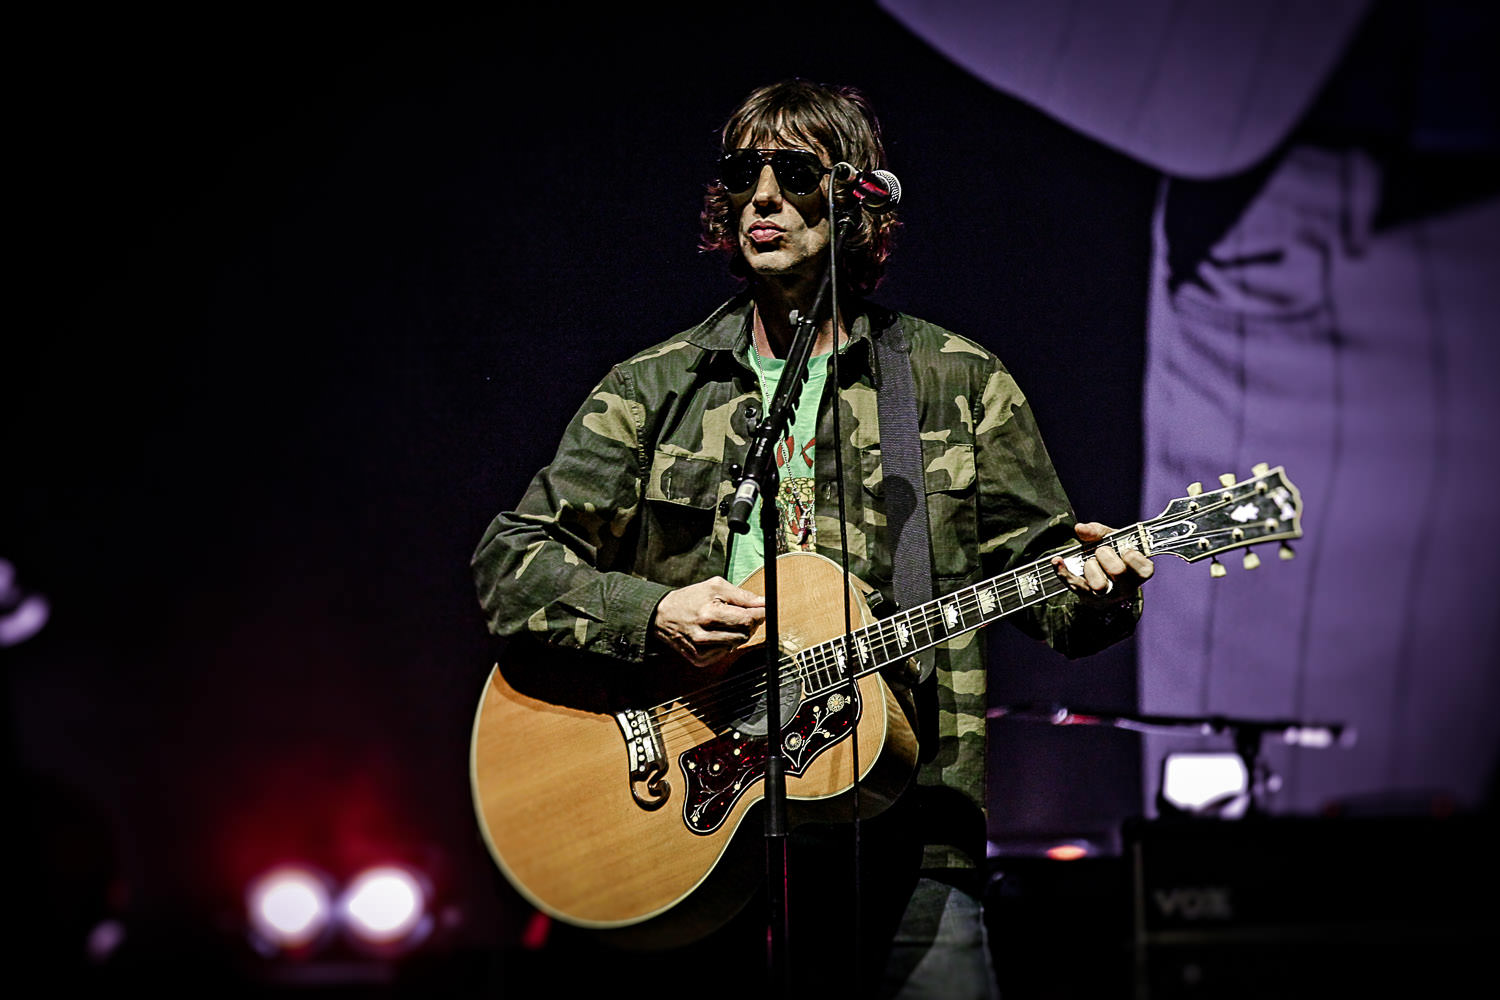 Richard Ashcroft wearing army jacket singing on stage in Manchester